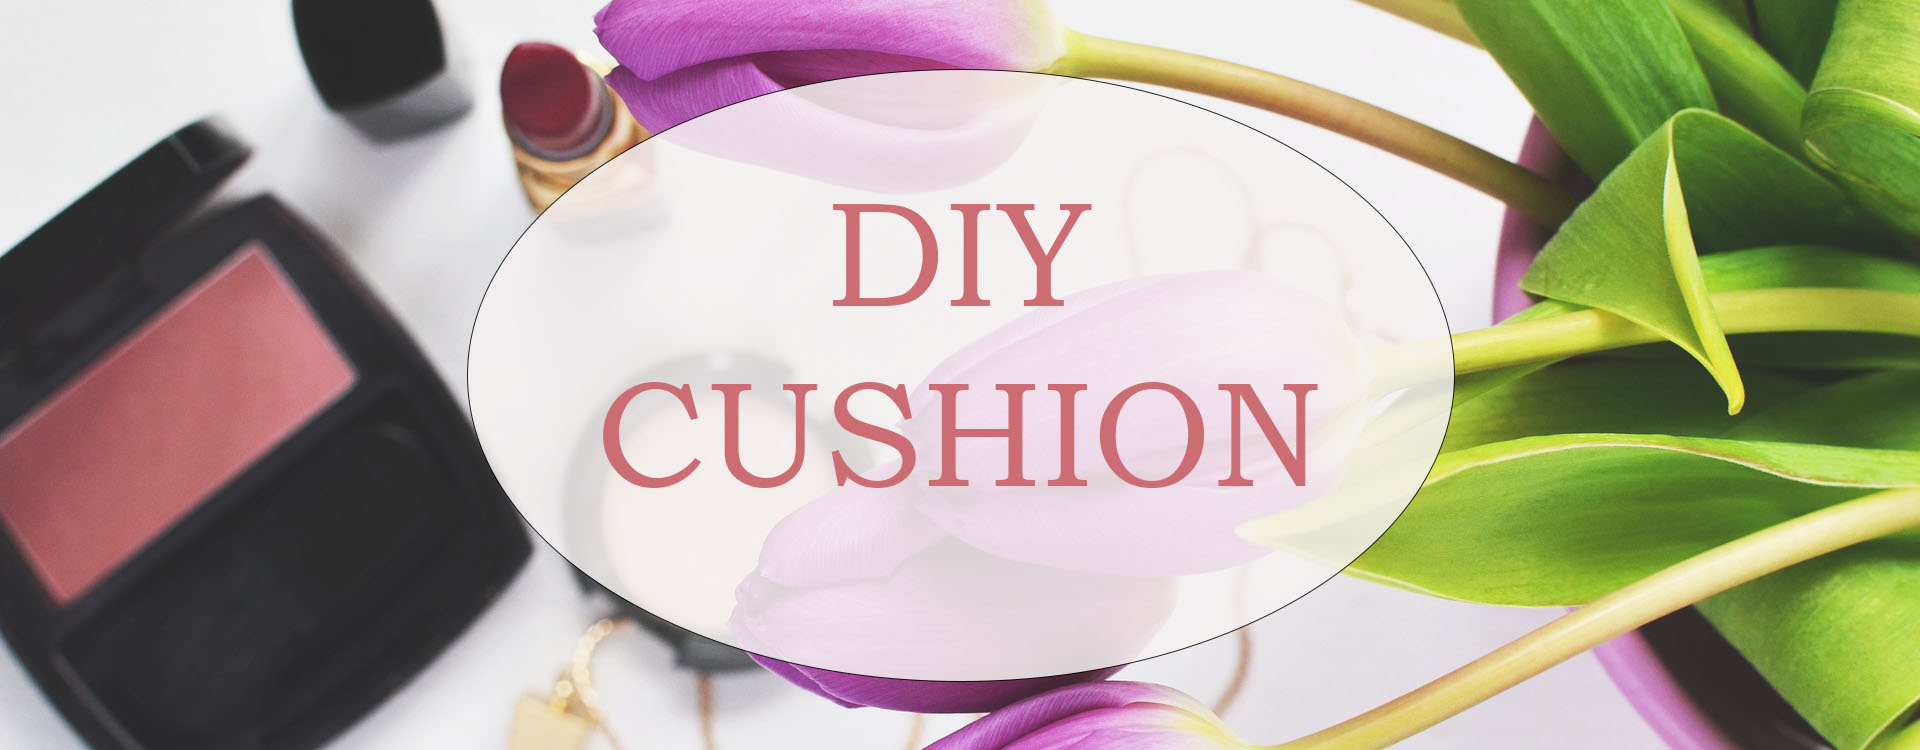 Cushion DIY